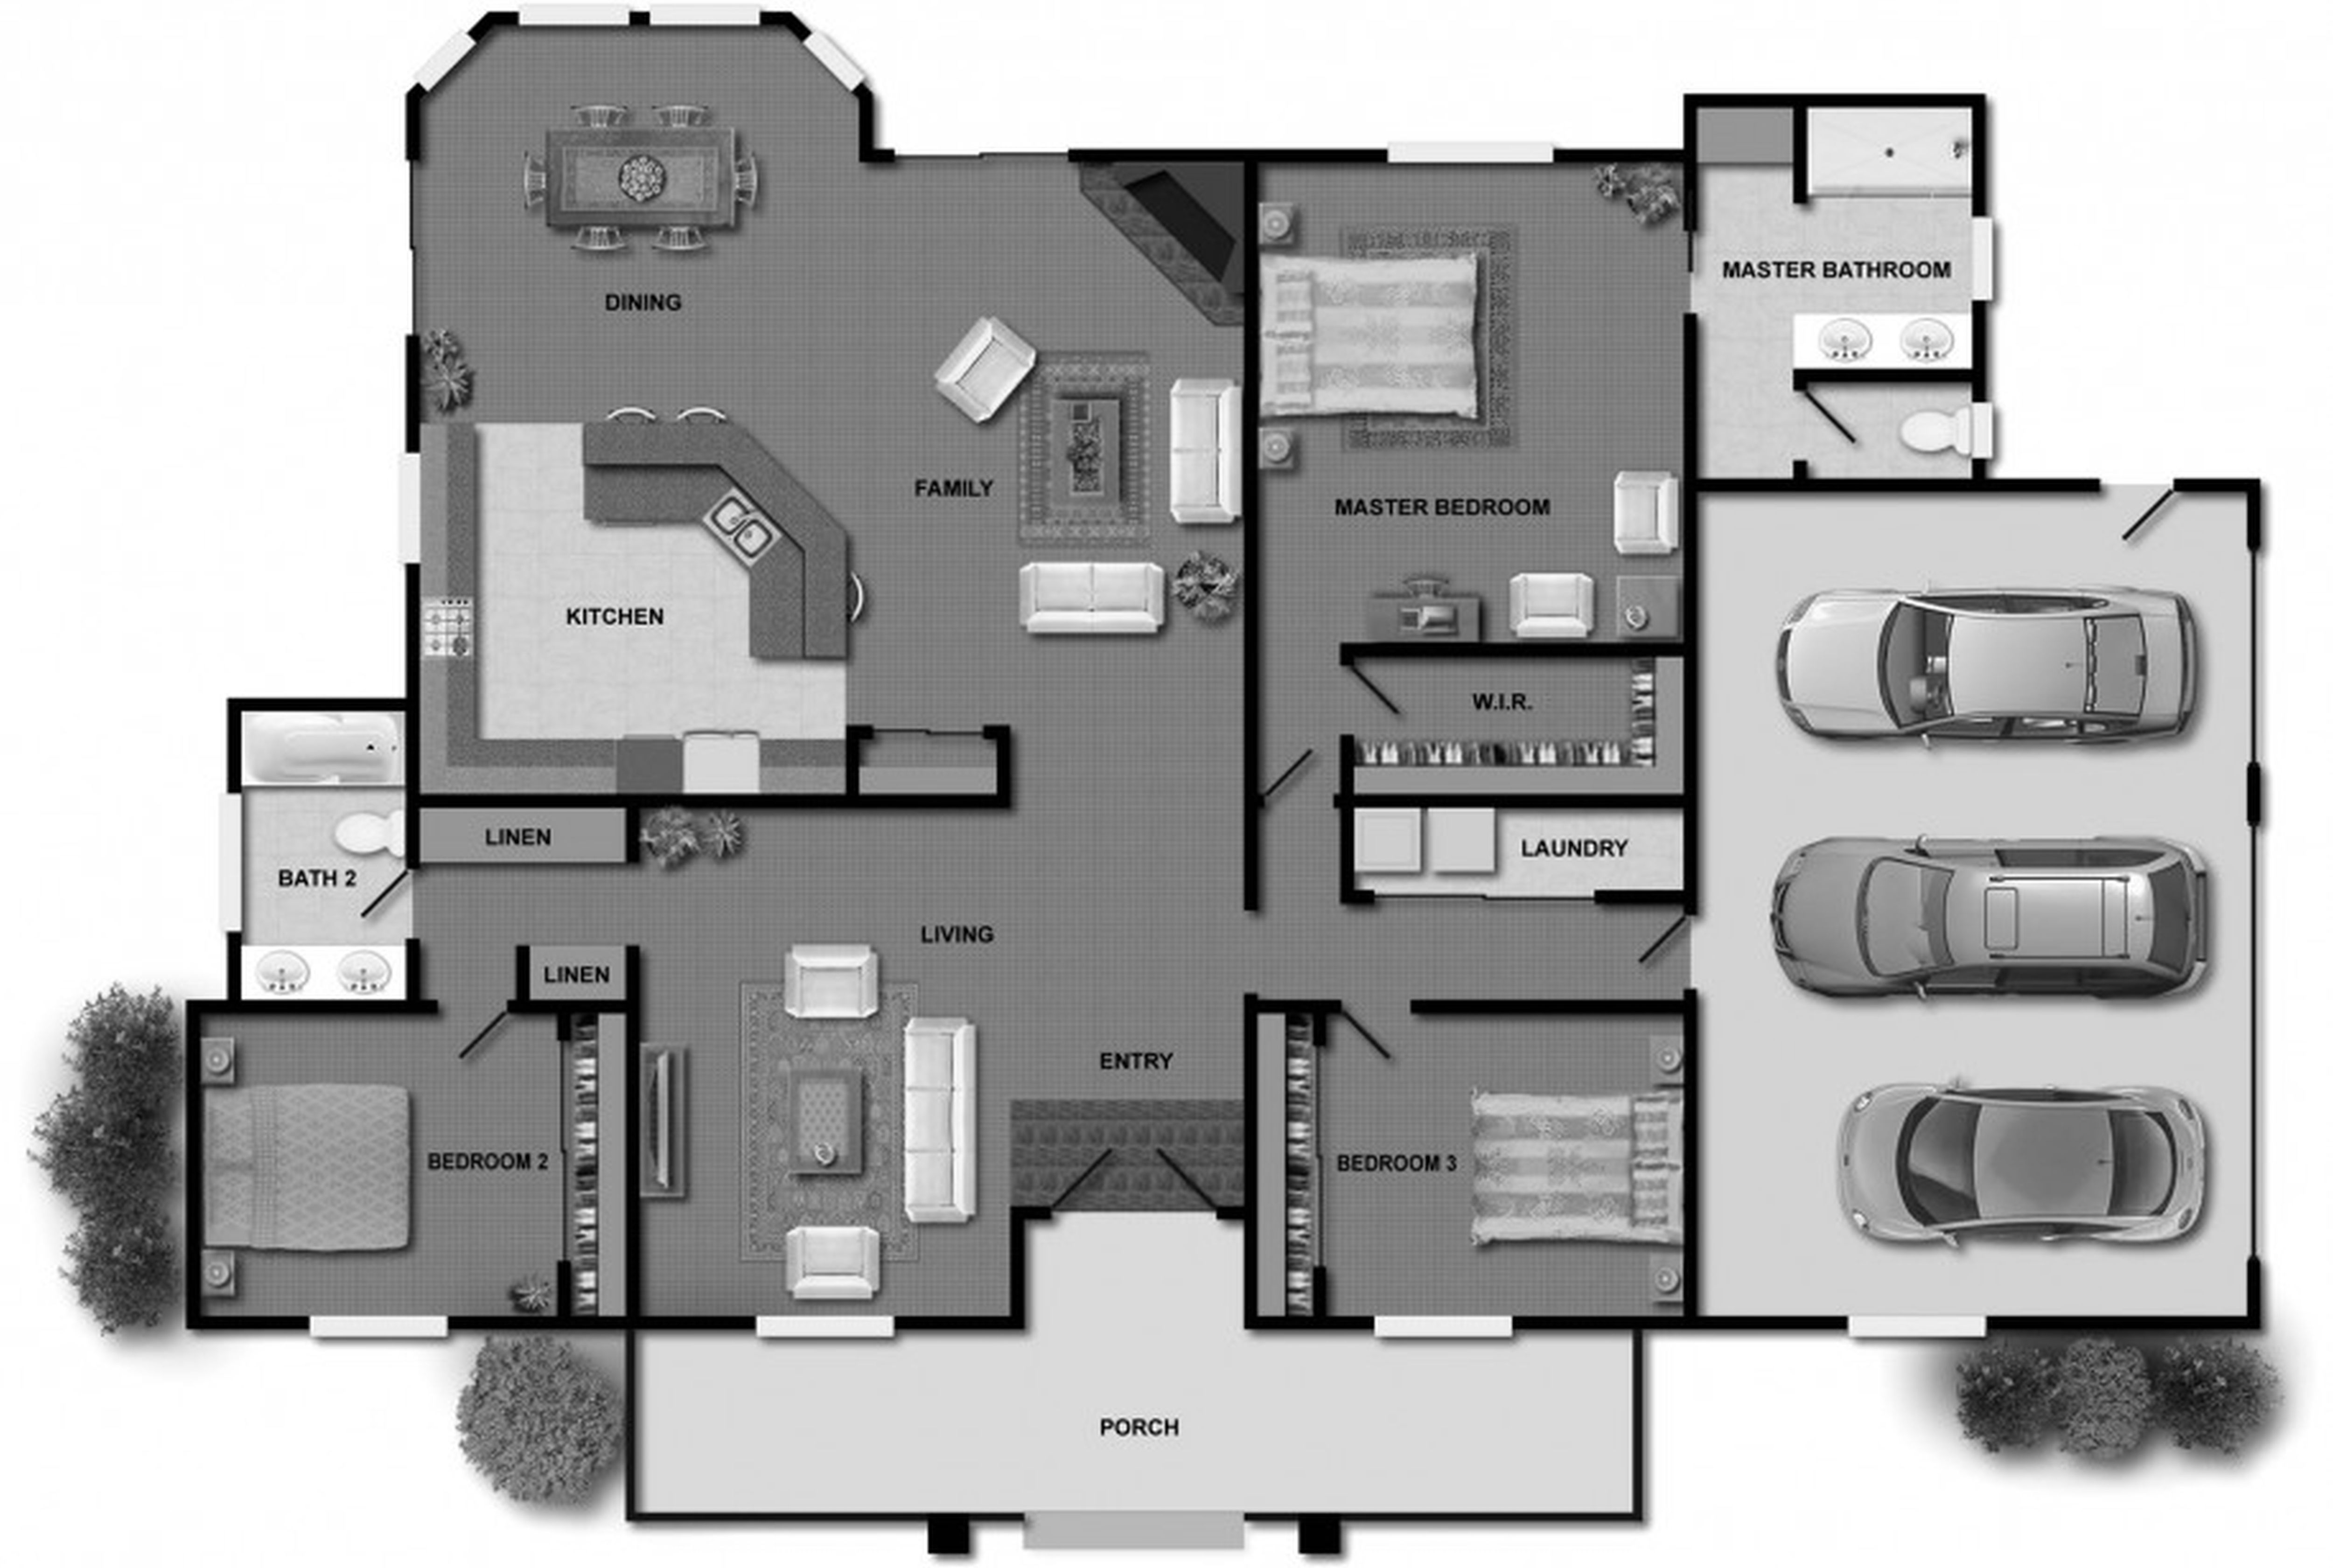 bedroom   bedroom house plans bedroom ranch house plans unique    bedroom   bedroom house plans bedroom ranch house plans unique black white house plans magnificent rectangle house plans post modern style   bedroo